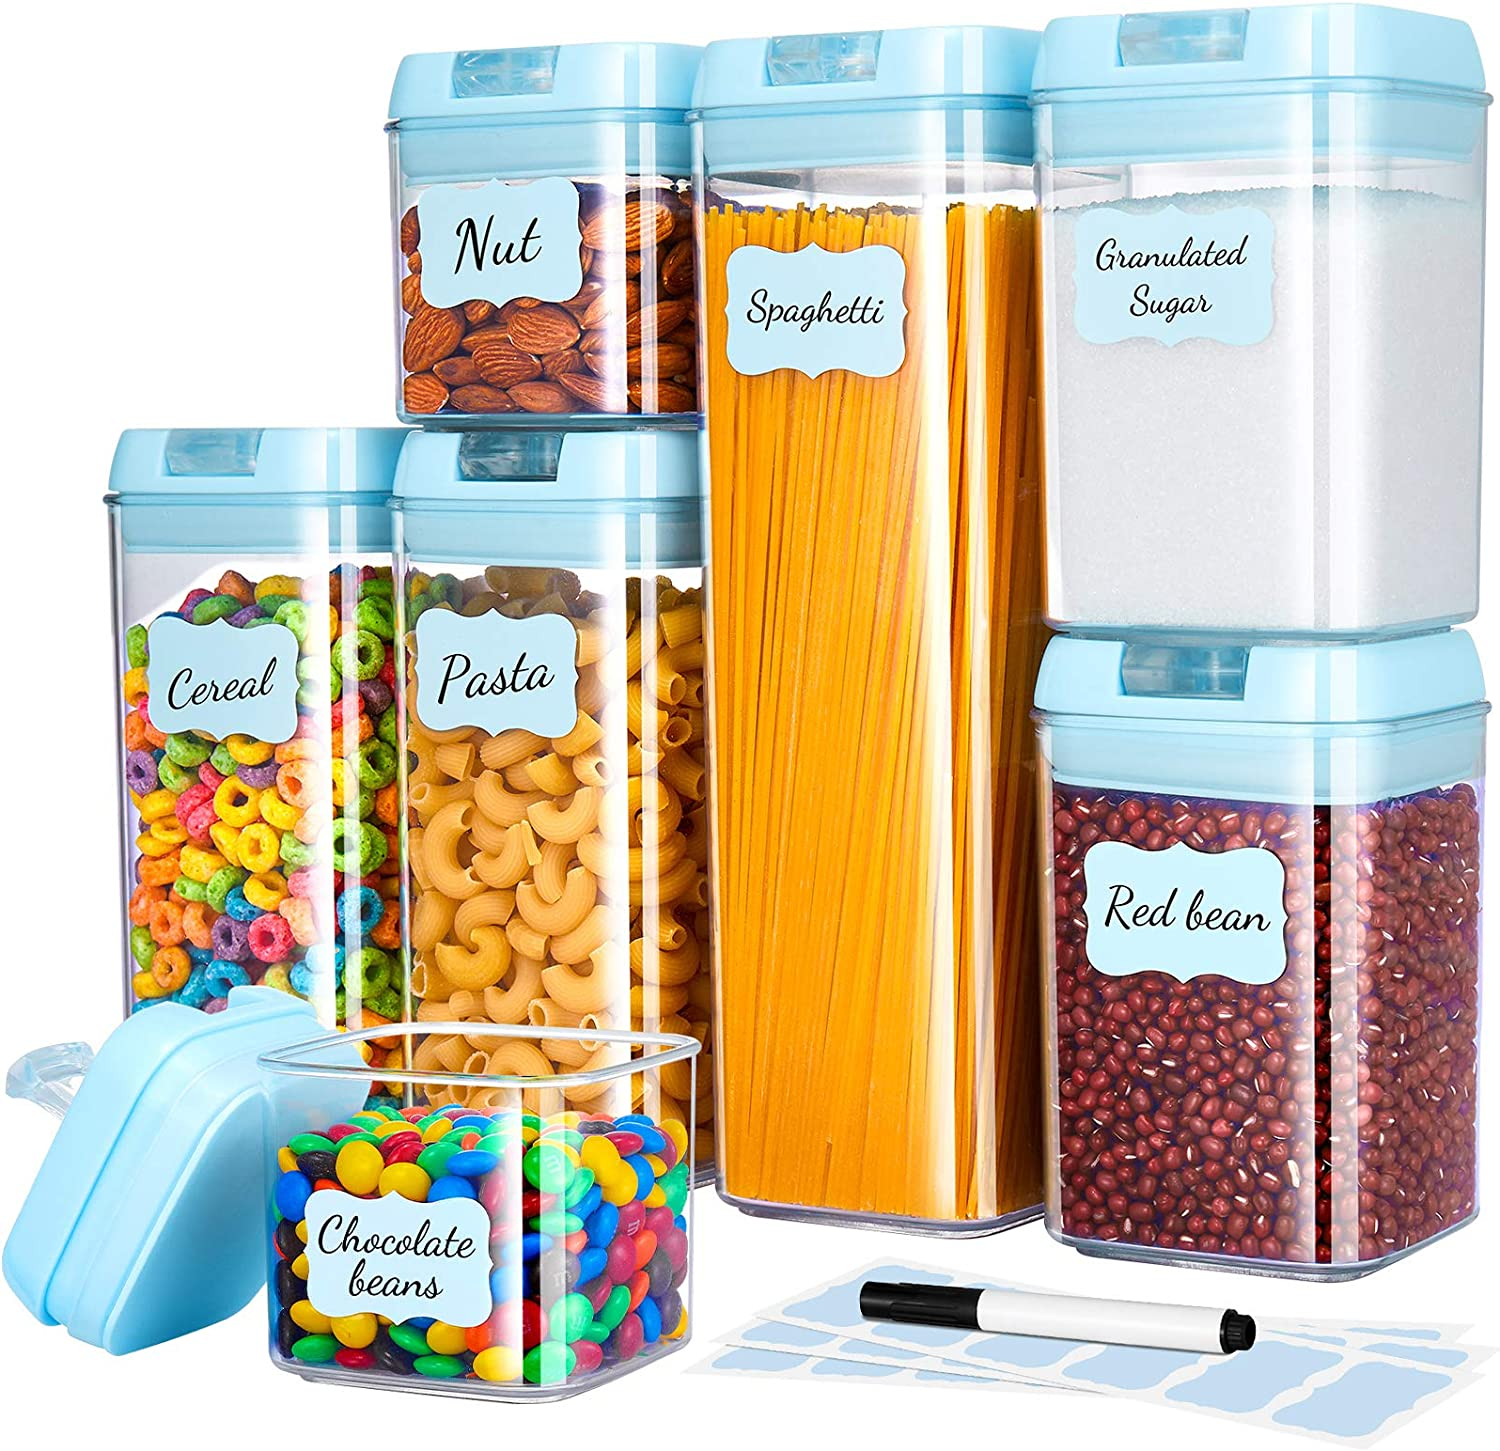 Gesentur Airtight Food Storage Containers with Lids, 7 Pack Plastic Cereal Containers Set for Kitchen Pantry Organization, BPA-Free Clear Storage Bins with Chalkboard Labels & Pen